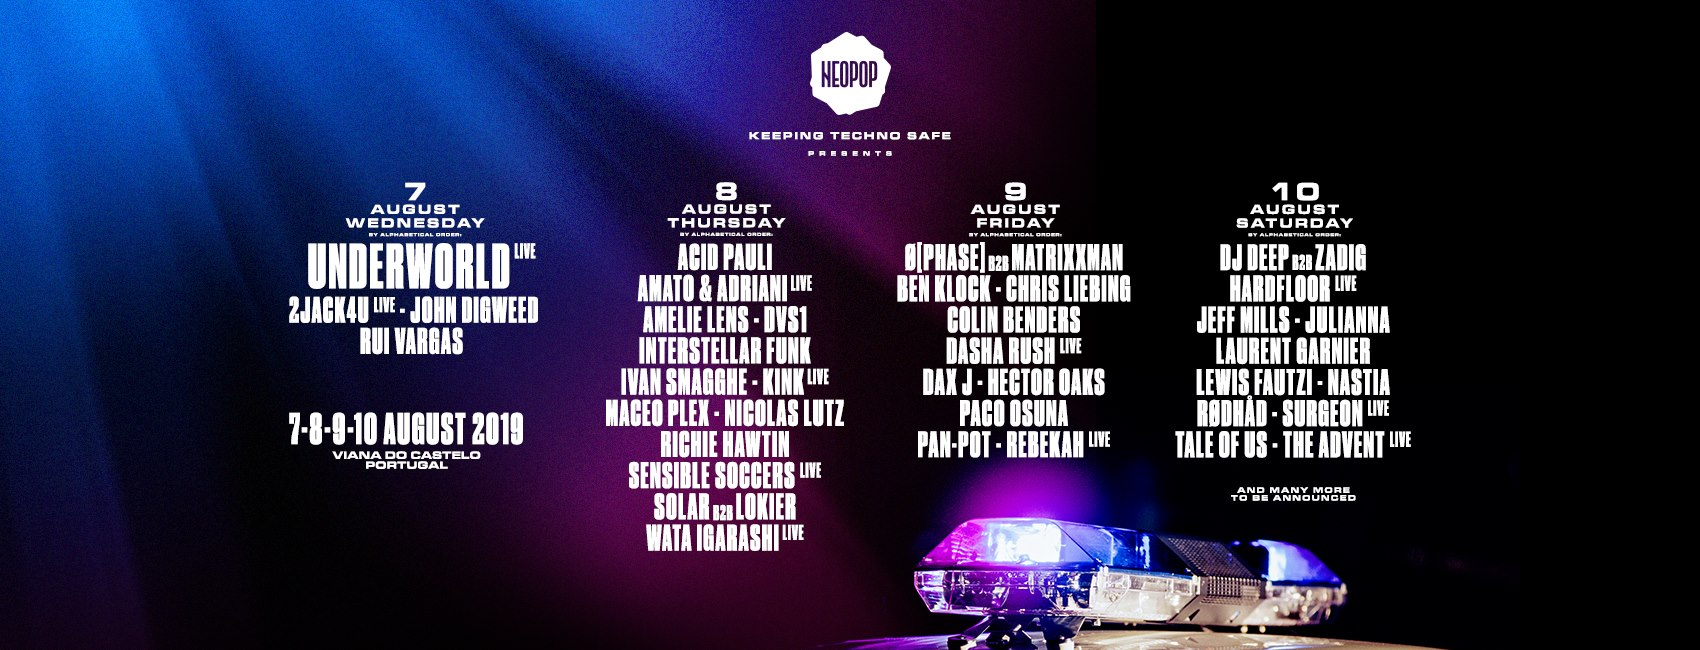 Neopop Festival announce next wave of artists for 2019 edition